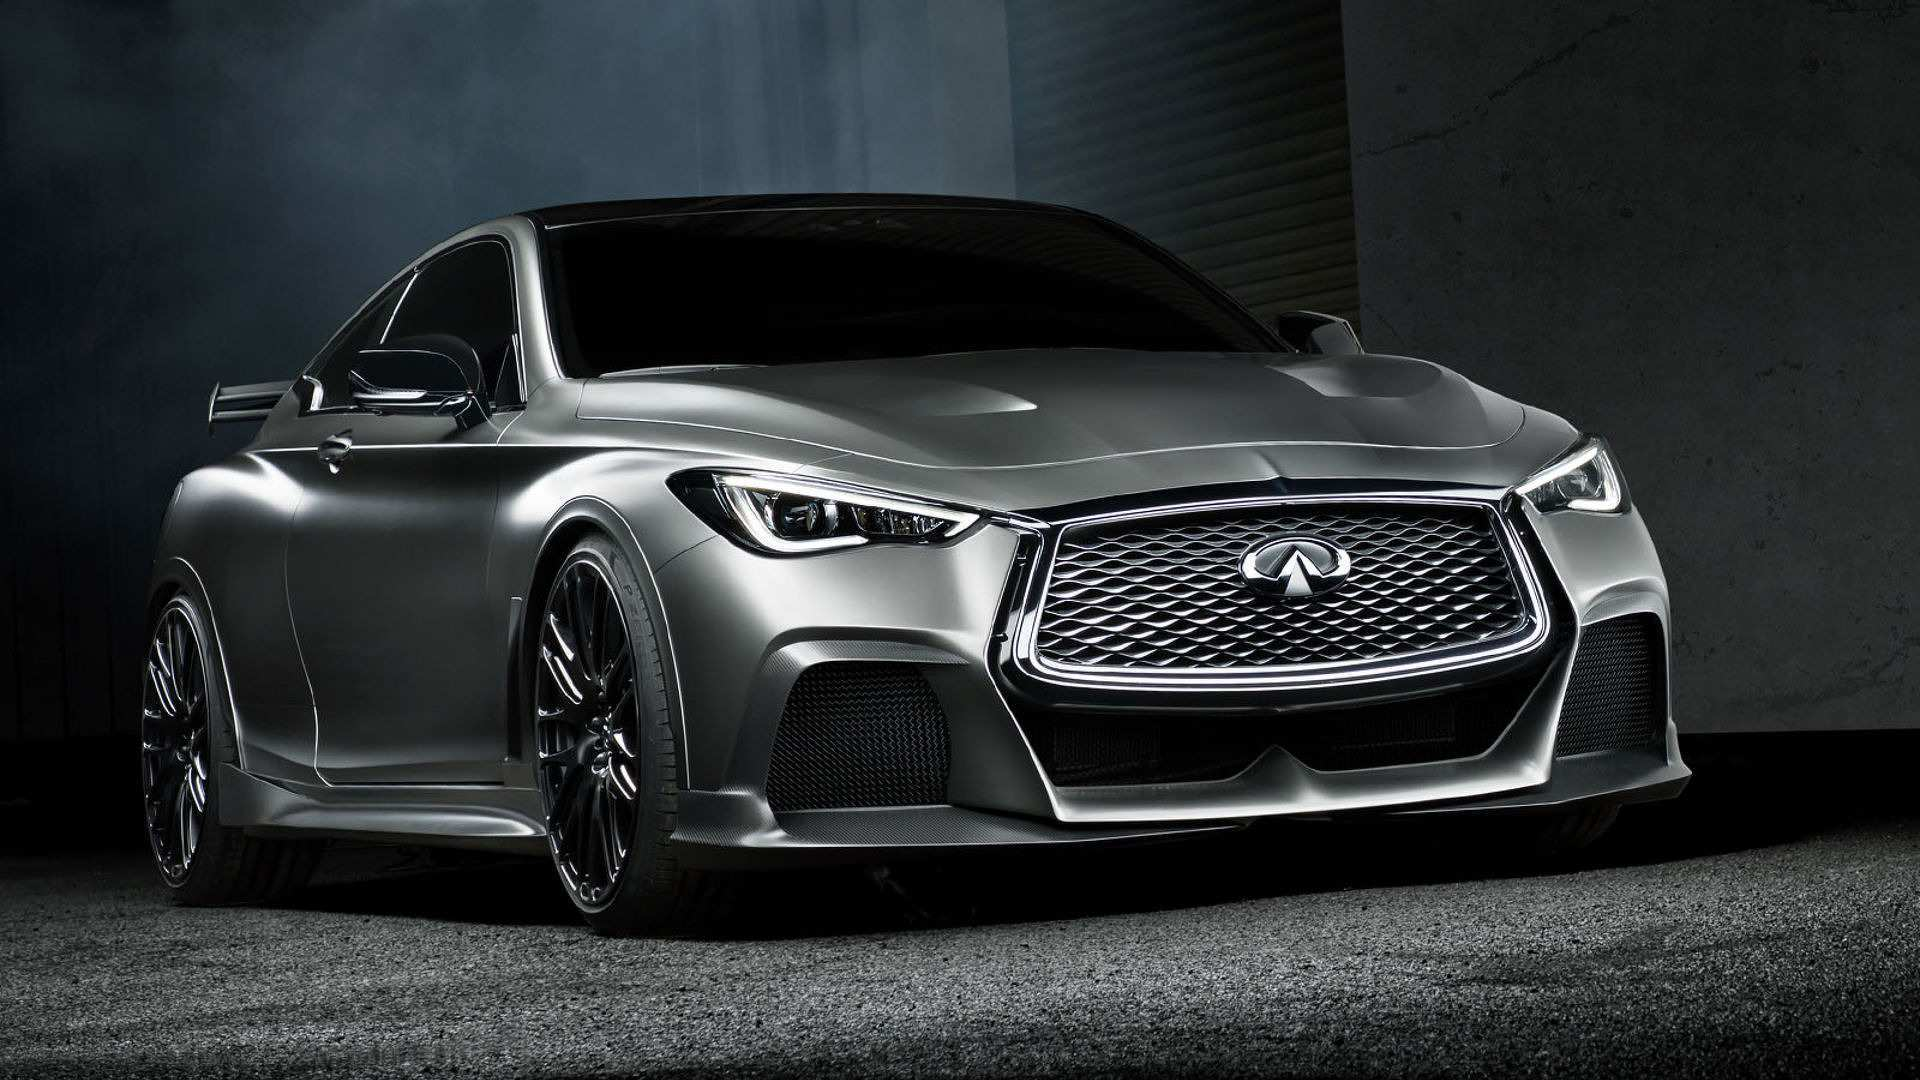 58 The 2020 Infiniti Q60 Coupe Ipl Overview by 2020 Infiniti Q60 Coupe Ipl